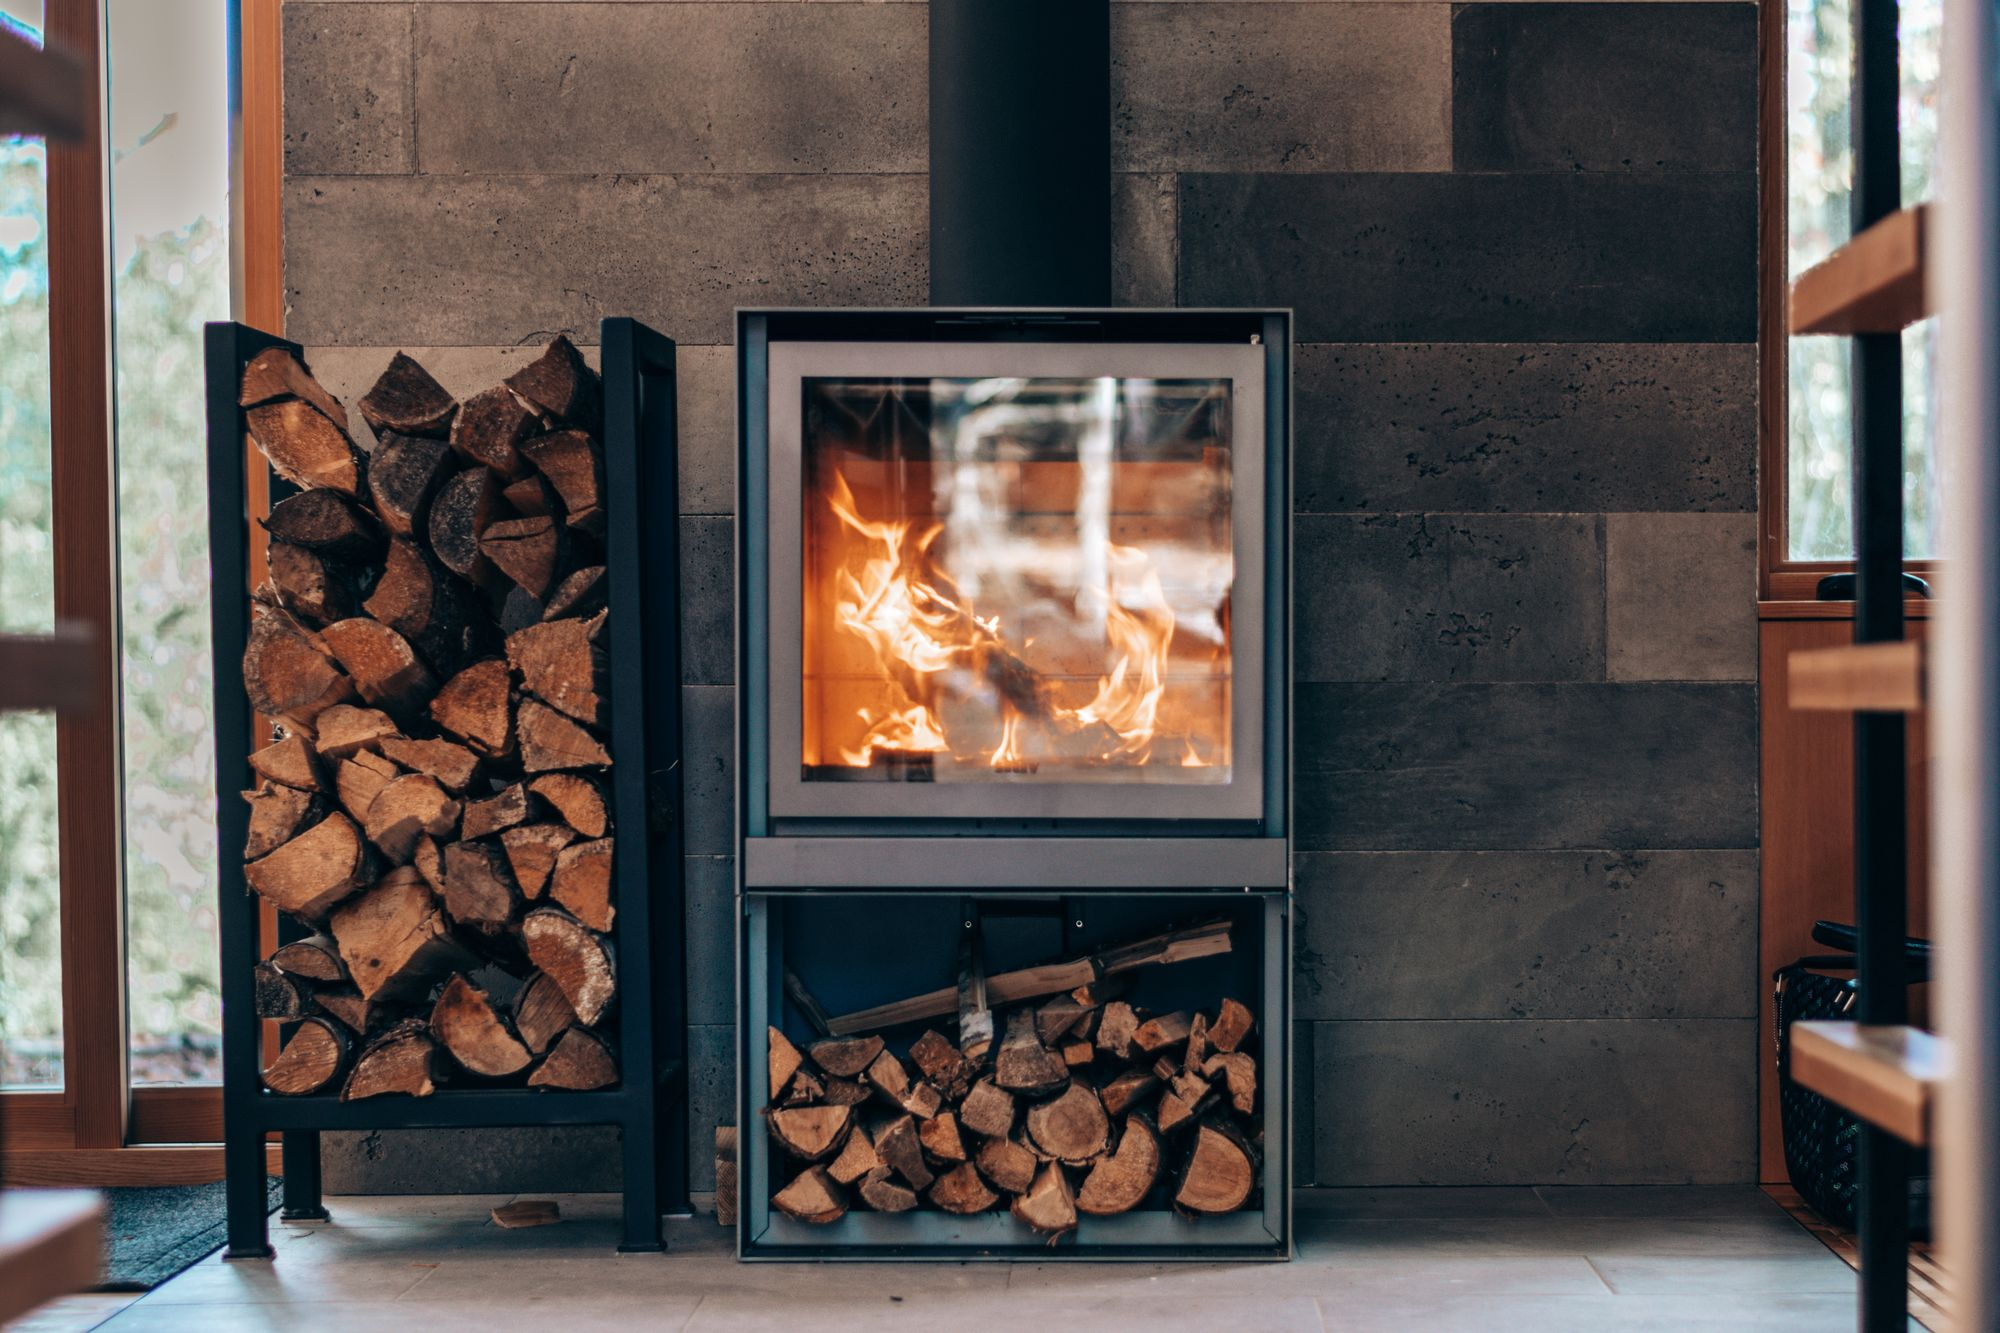 Airbnb Indoor Fireplace Filter